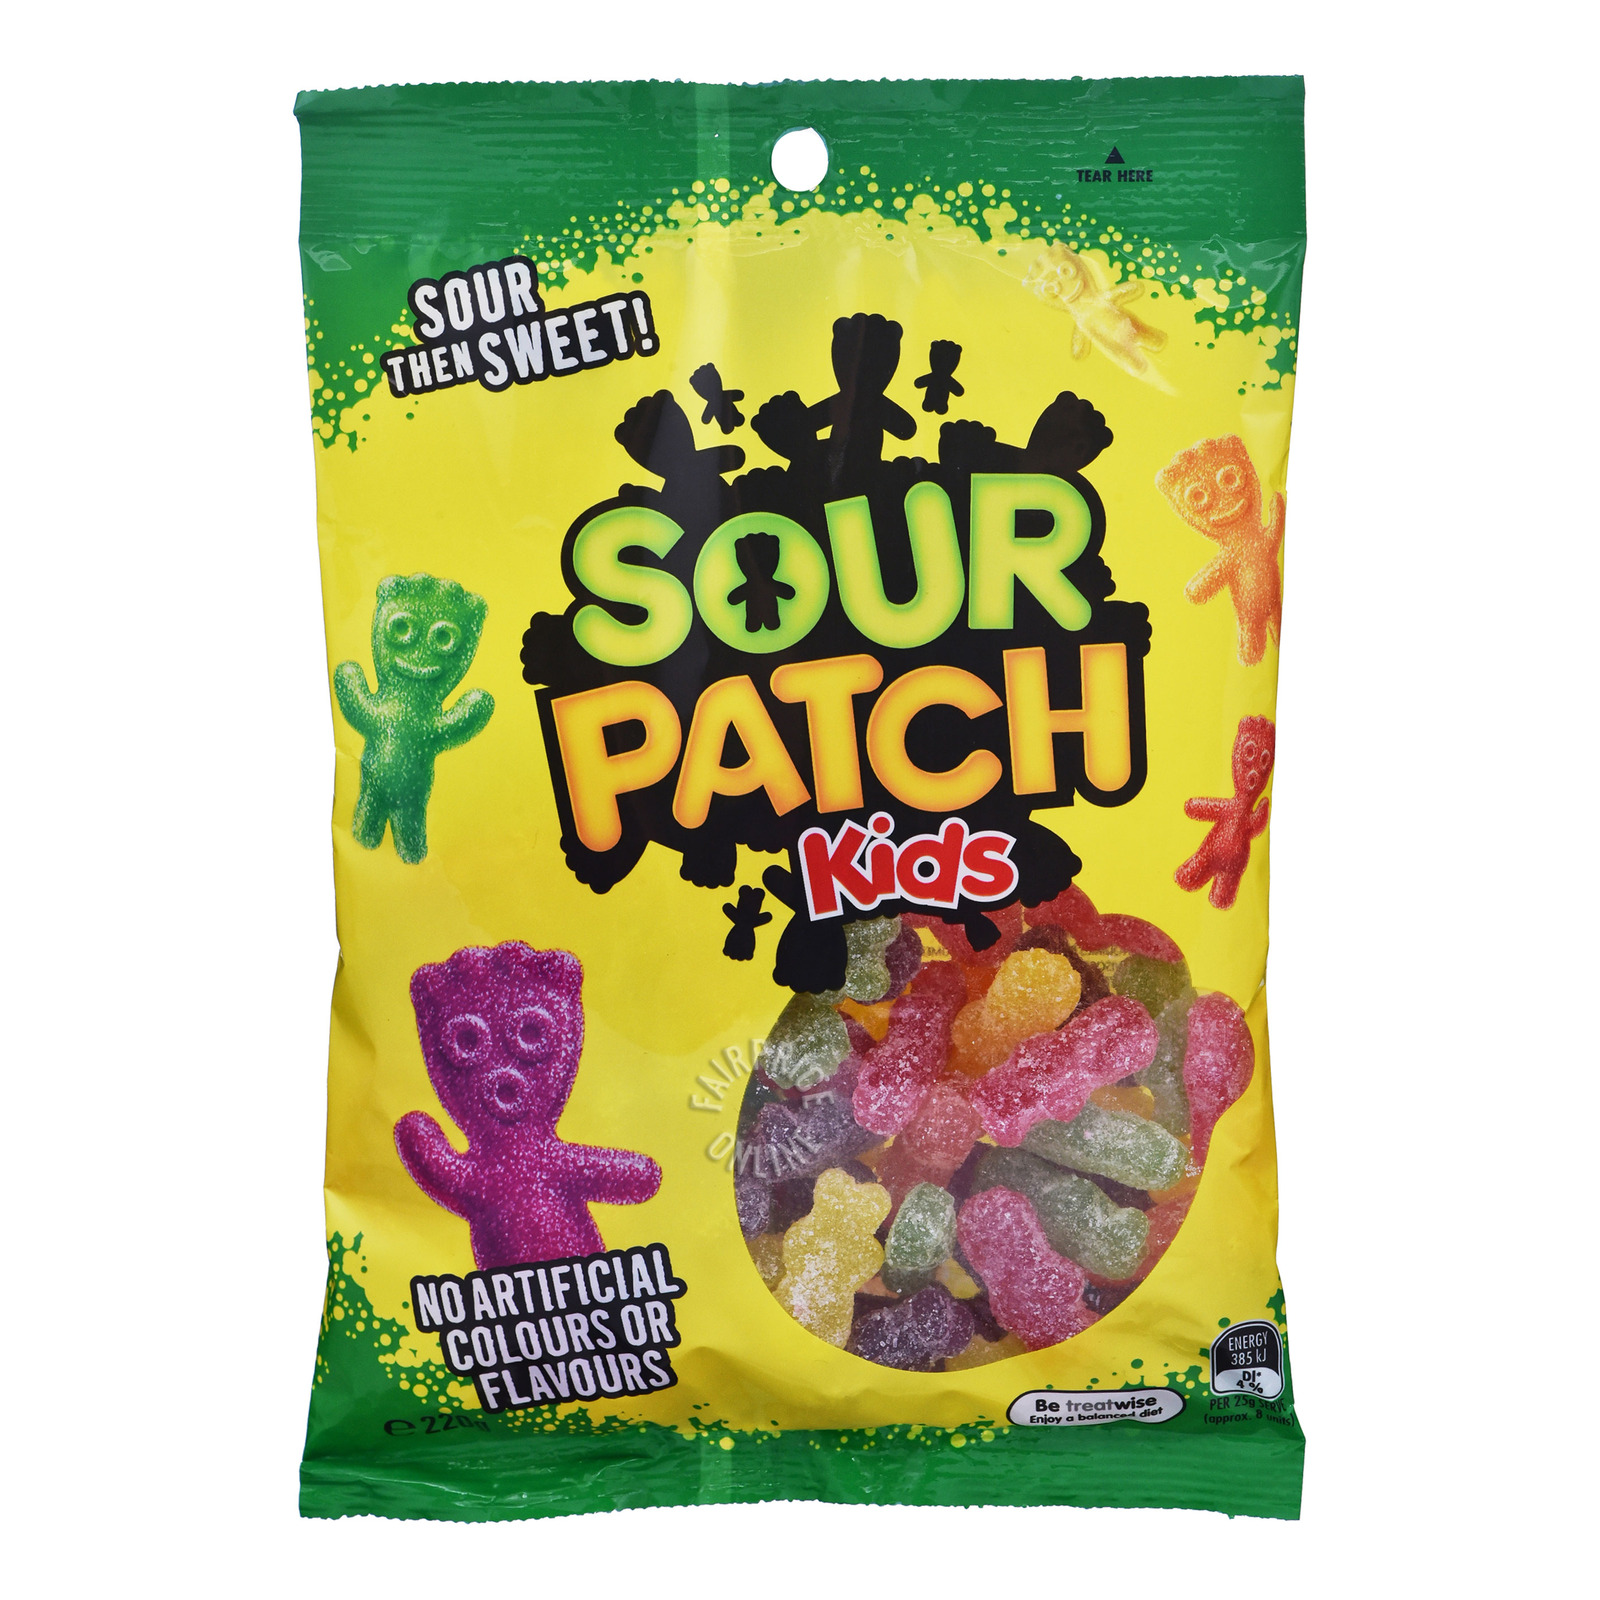 TNCC Sour Patch Sweets - Kids